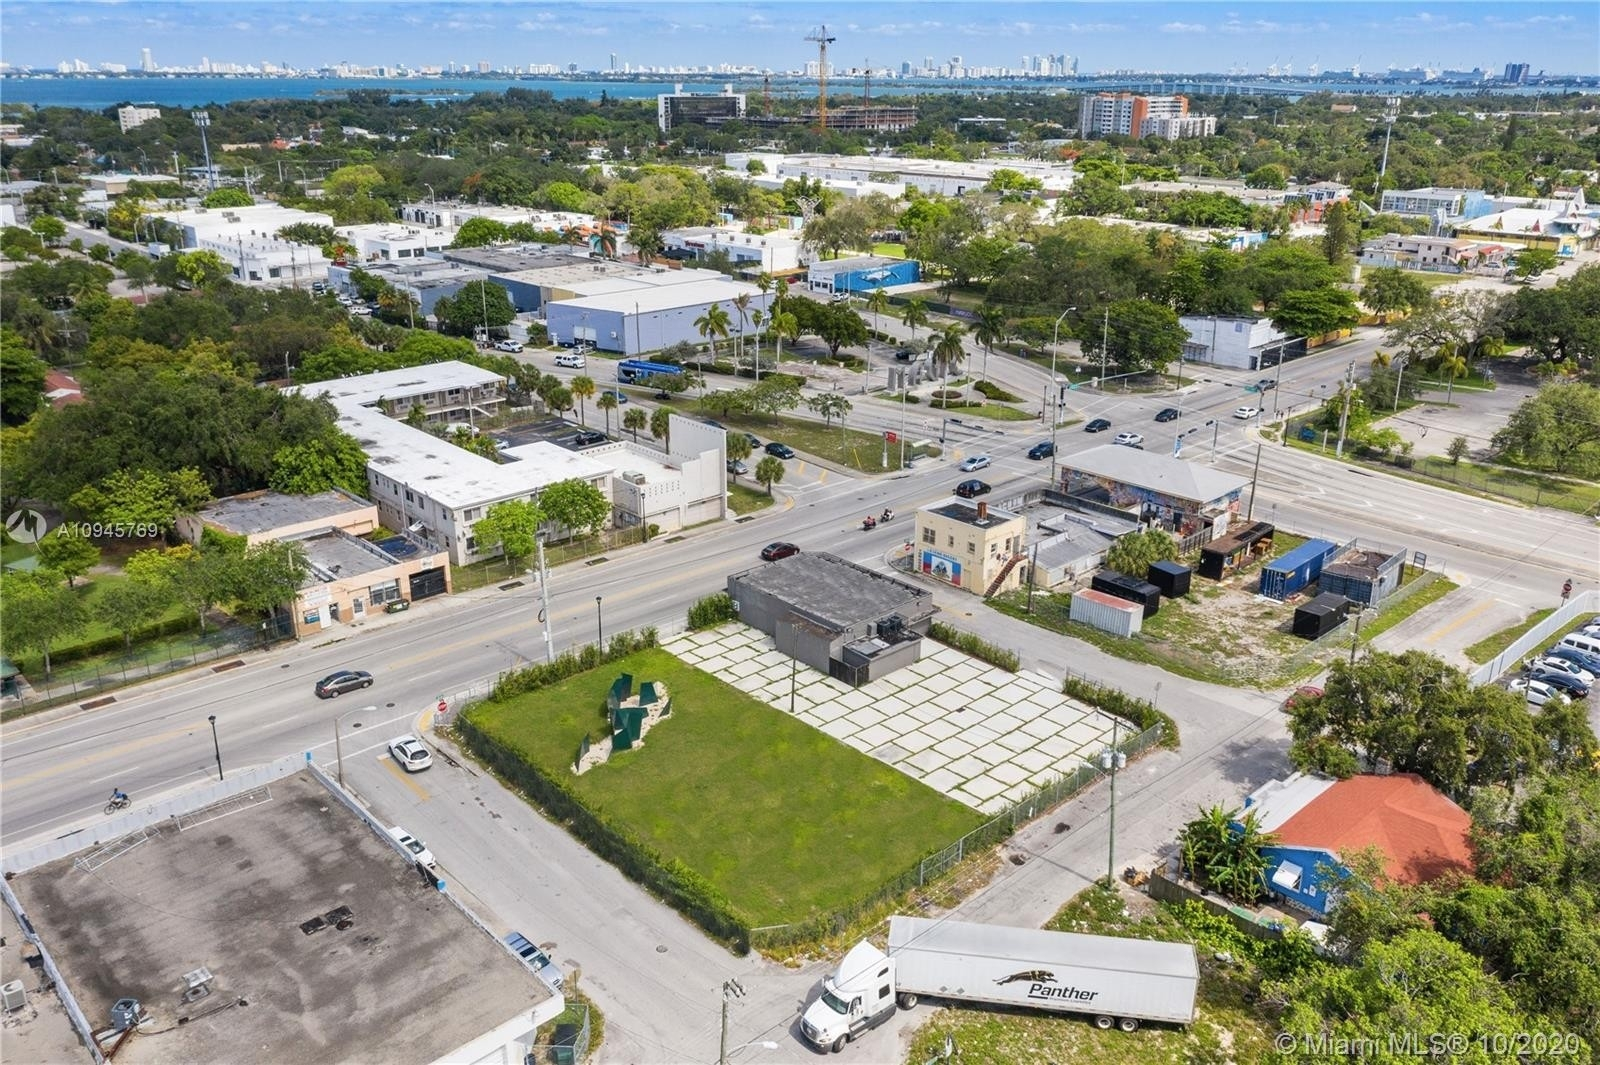 Commercial / Office for Sale at Creole District, Miami, FL 33138